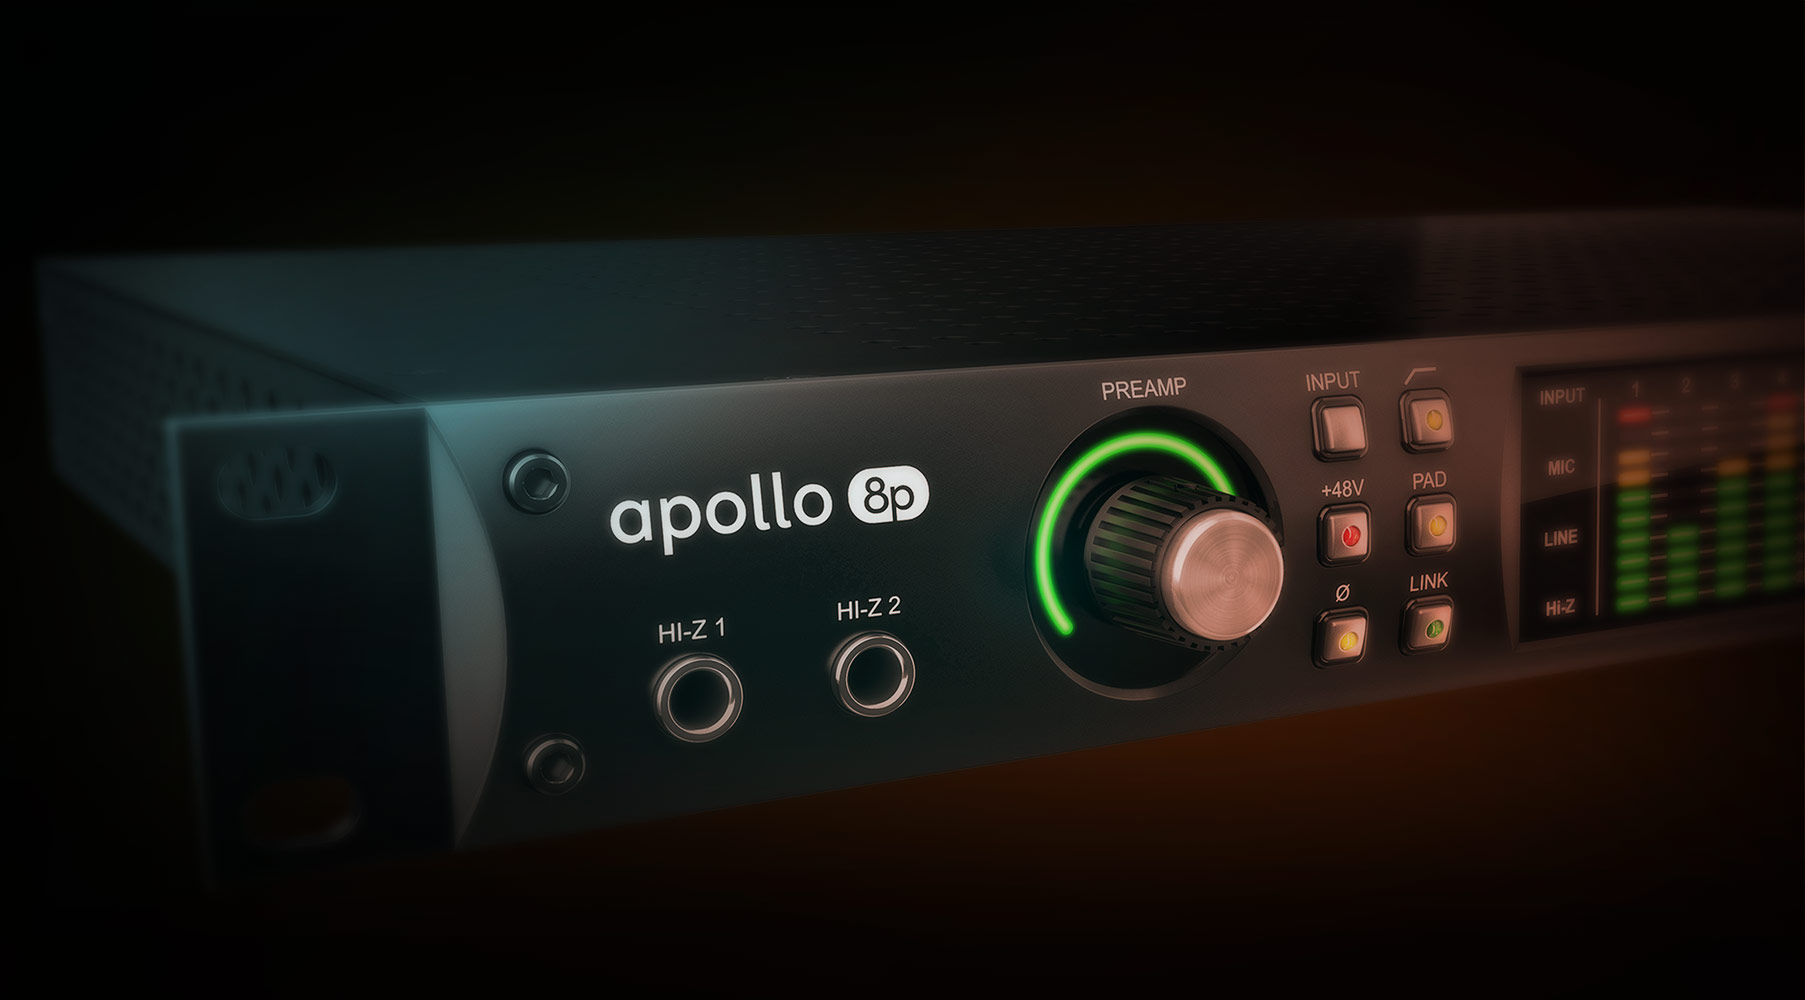 Apollo 8p Thunderbolt Audio Interface Universal Band 2 Preamplifier